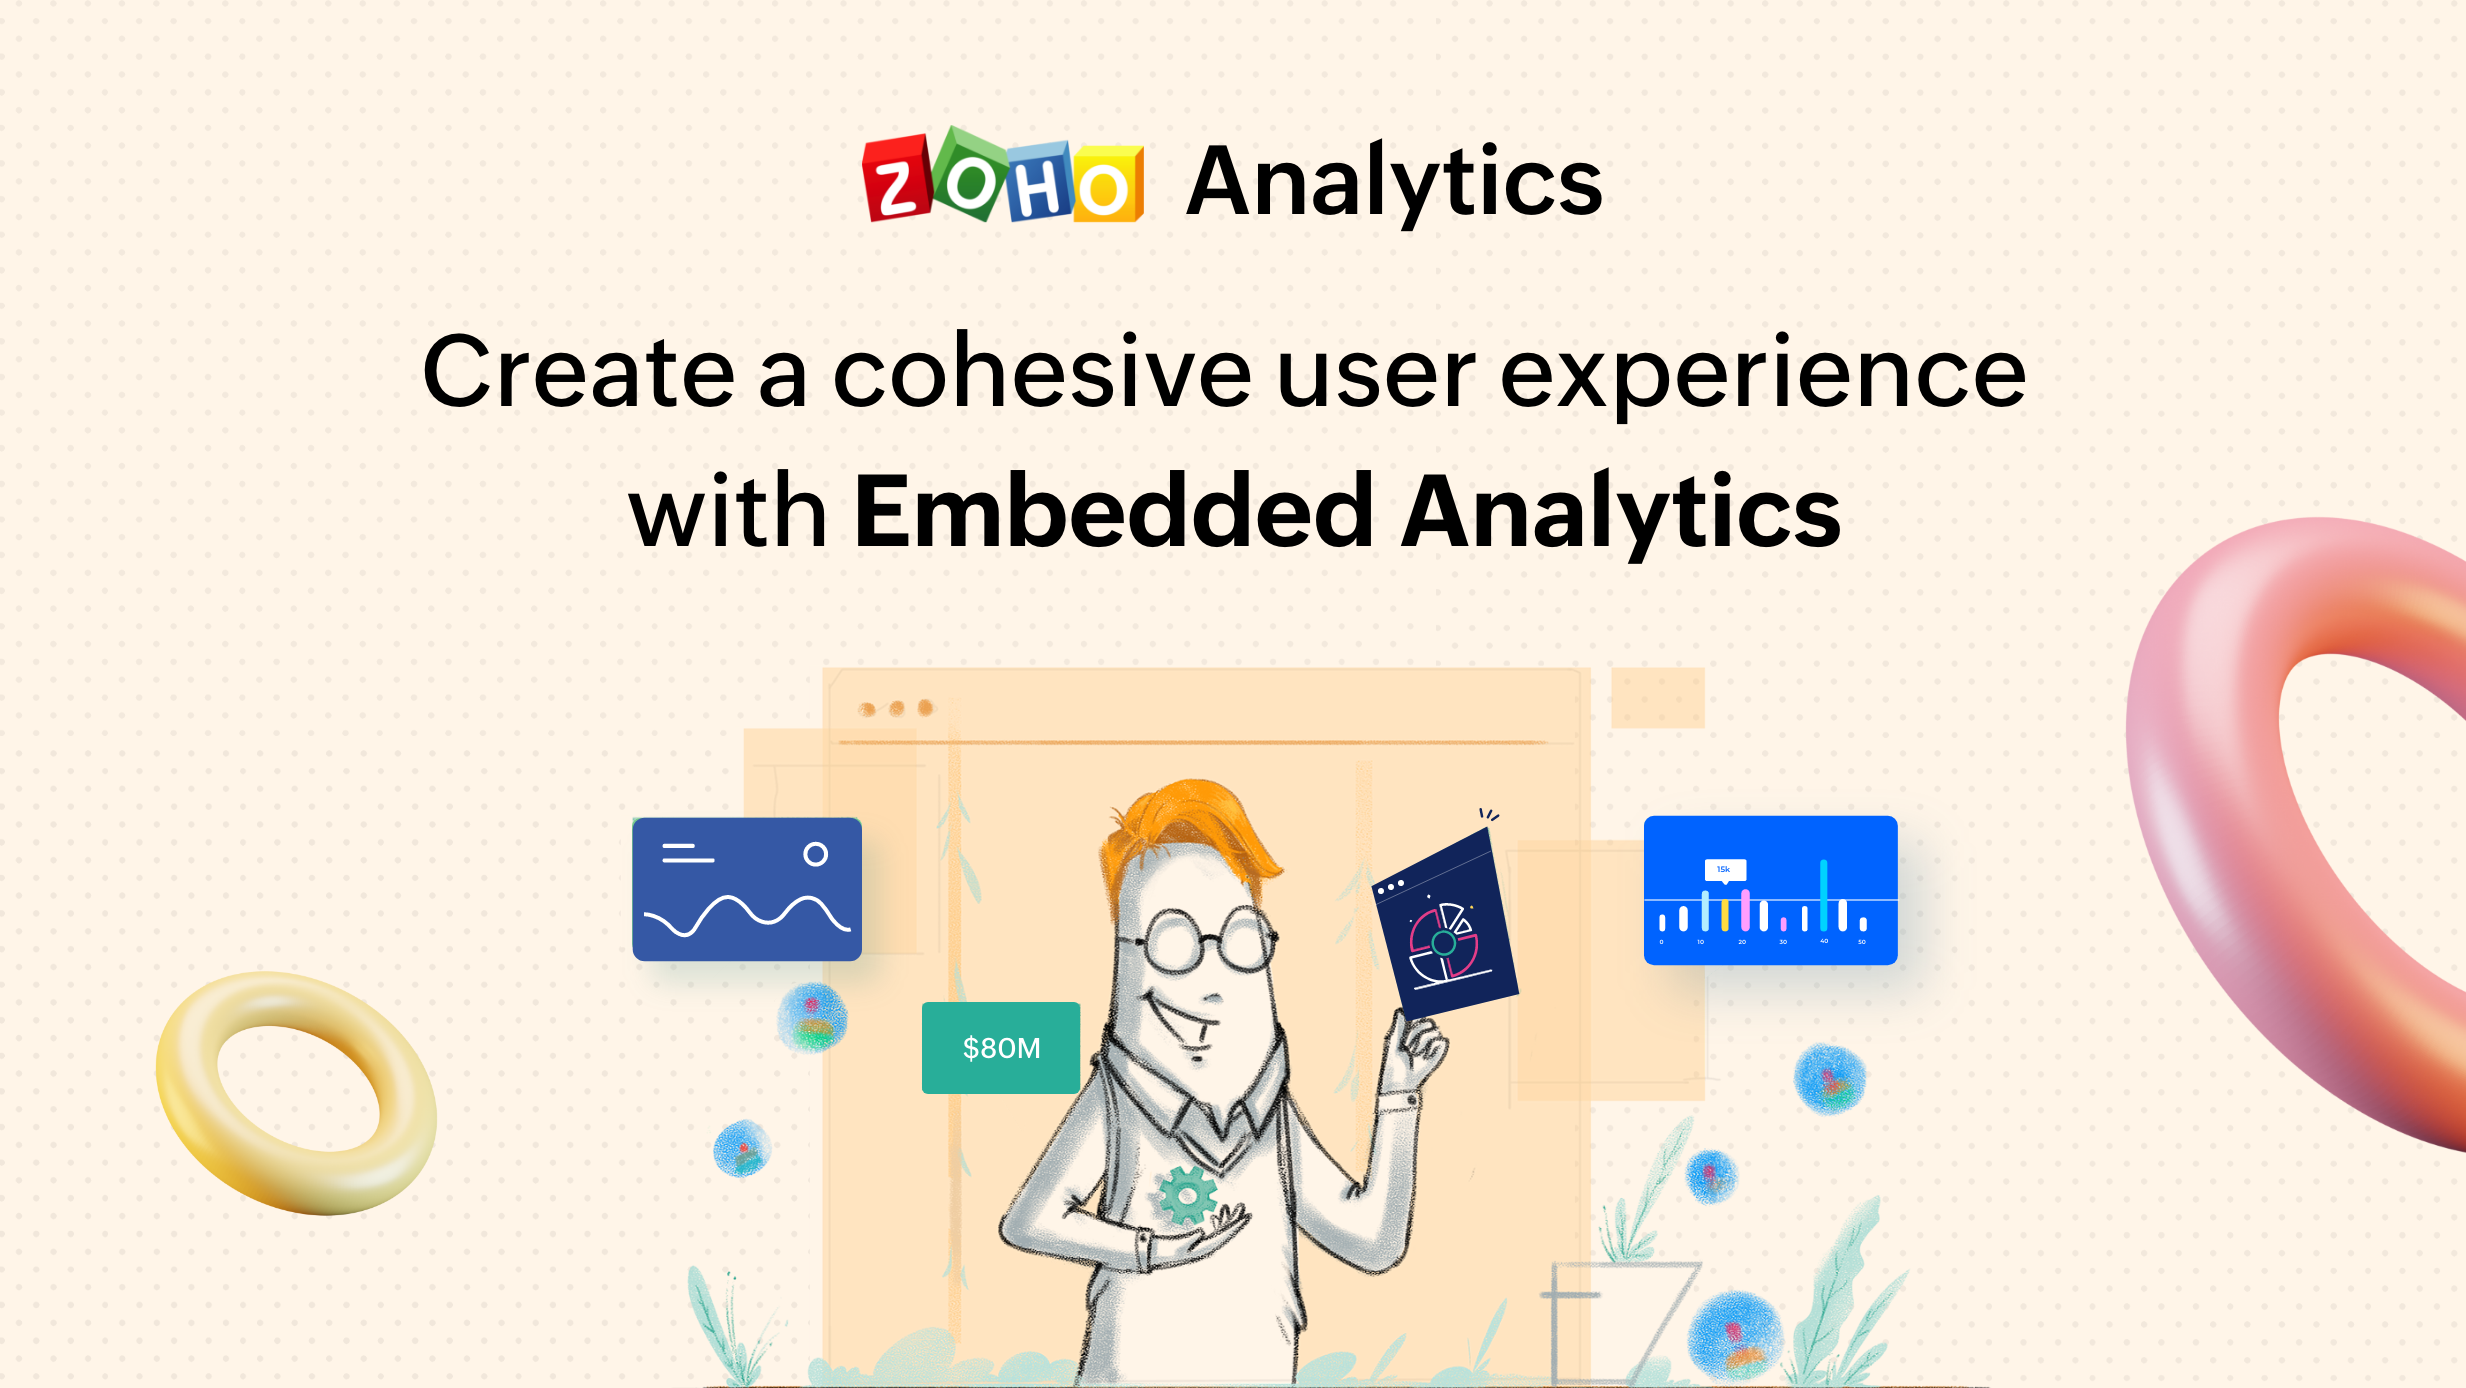 Create a cohesive user experience with embedded analytics